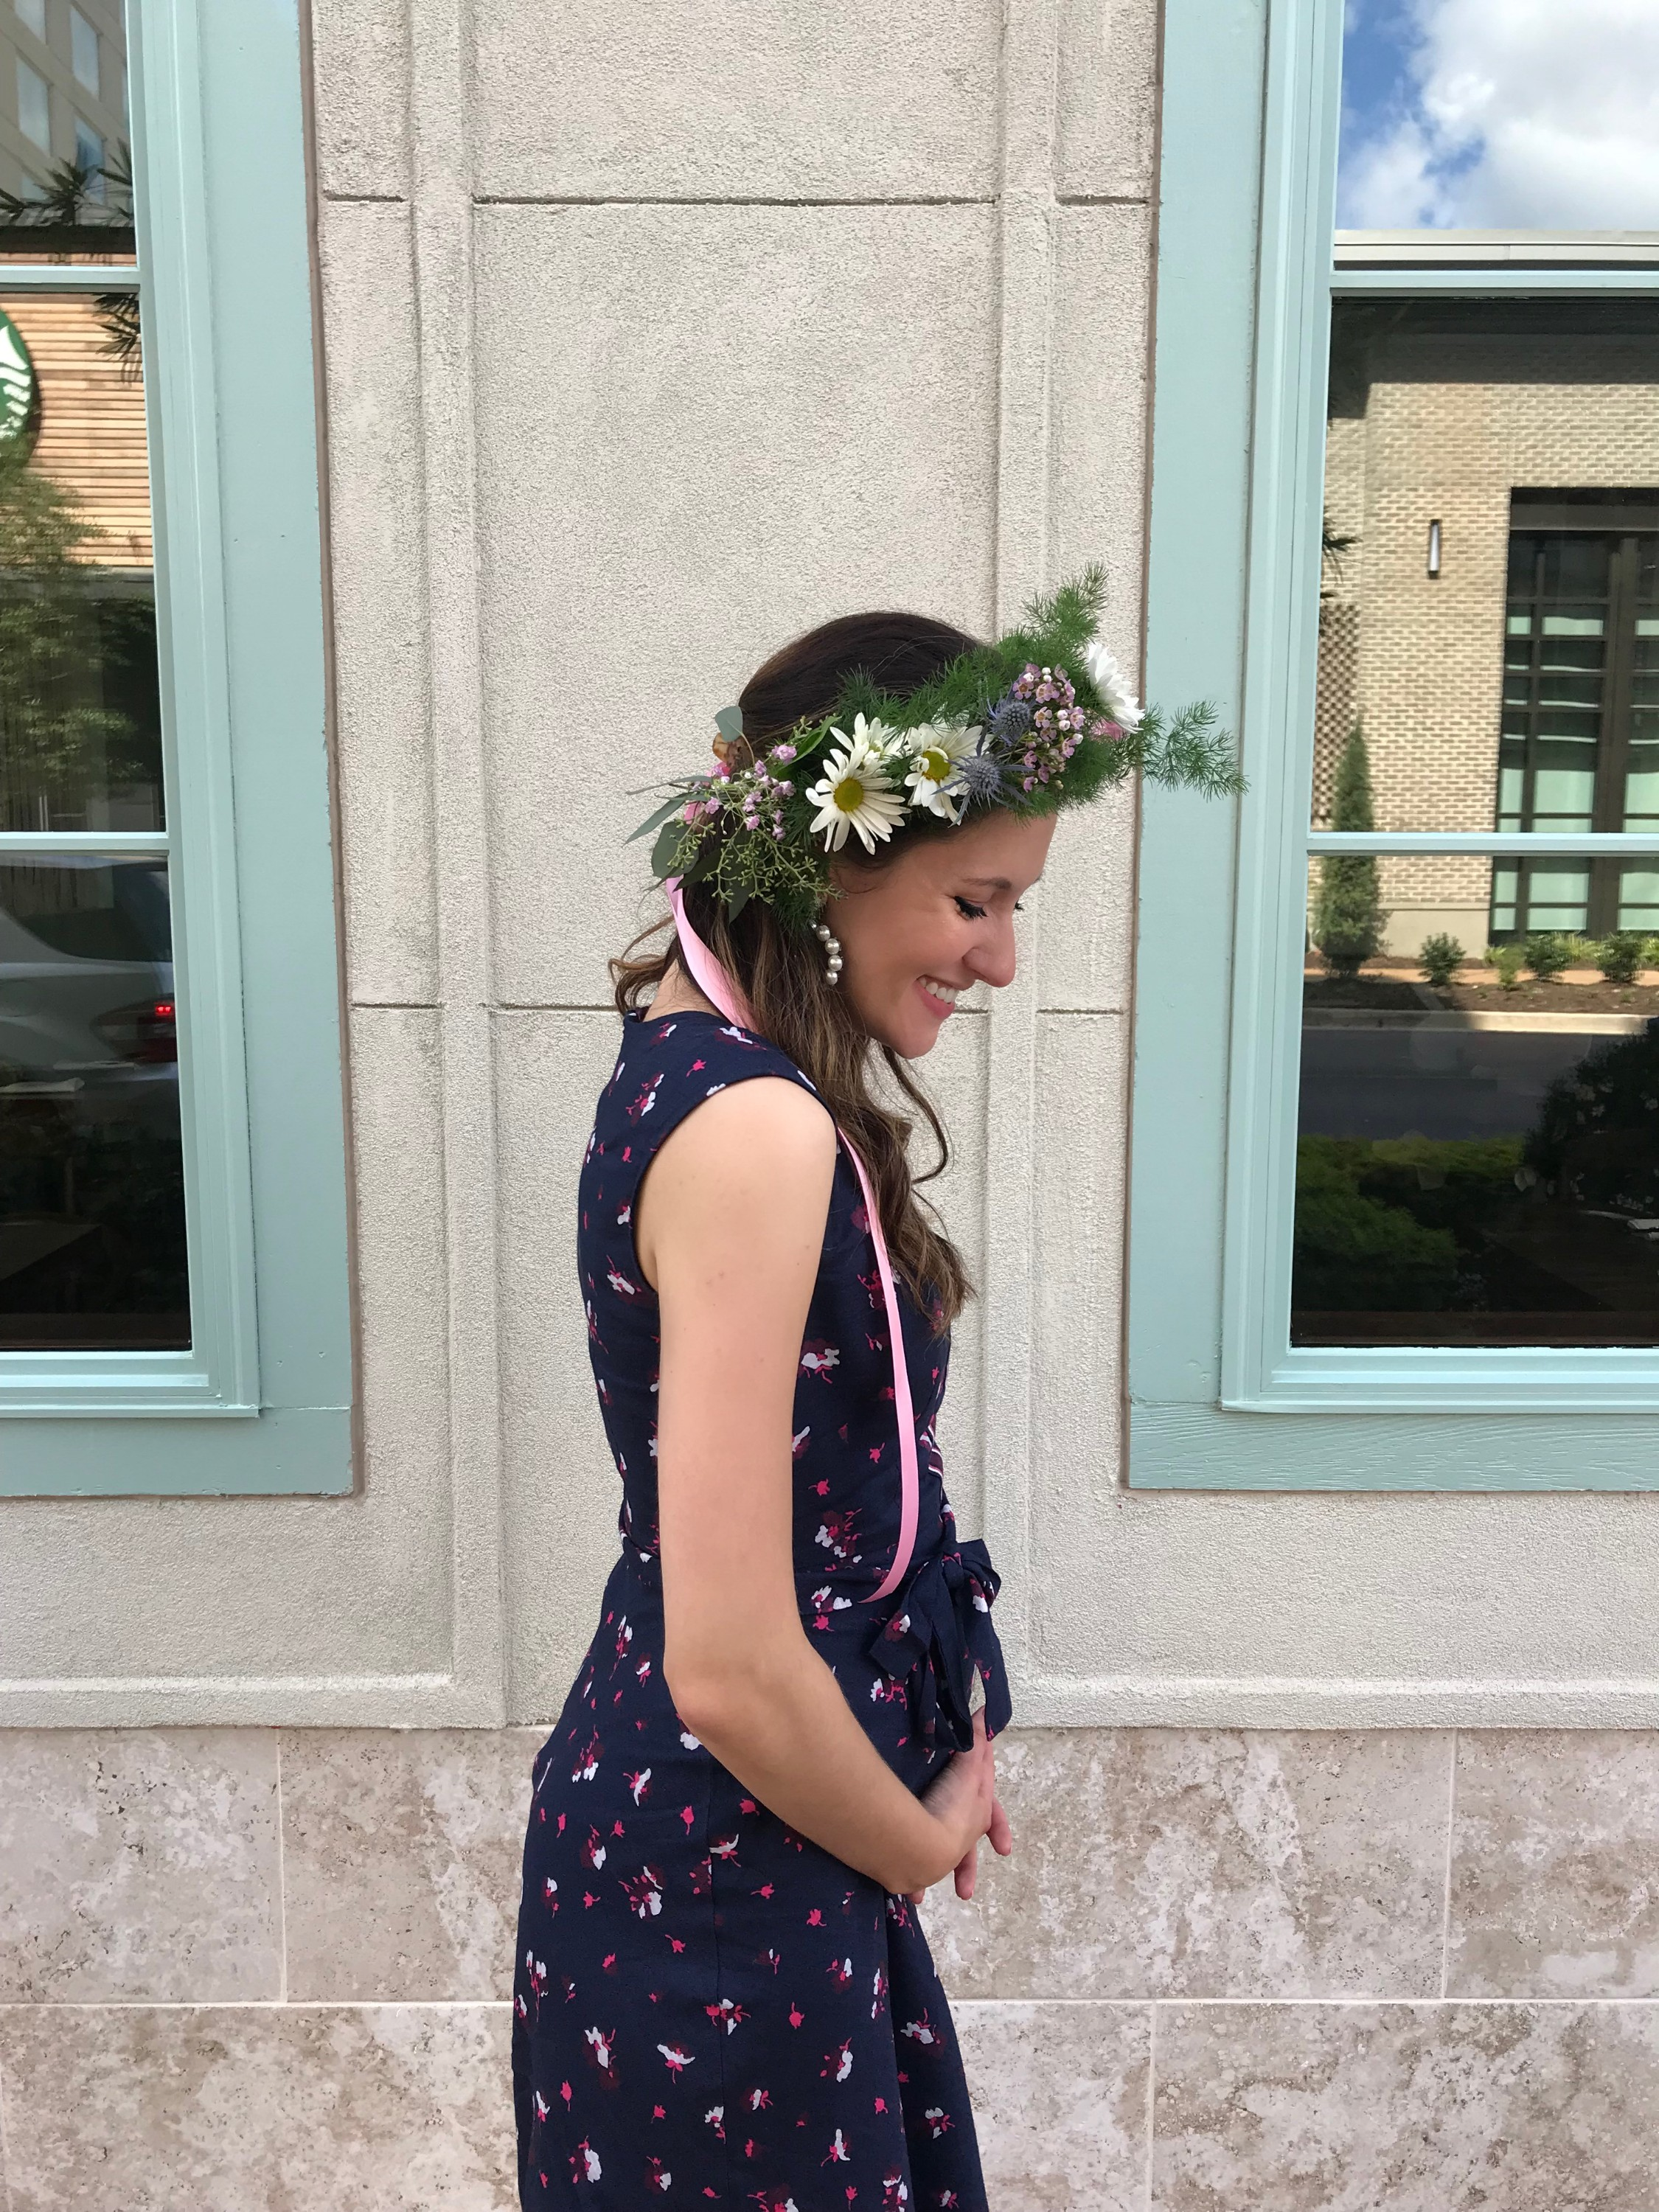 Bumpdate: 24 Weeks Pregnant! Here's what's happening at 6 months pregnant...